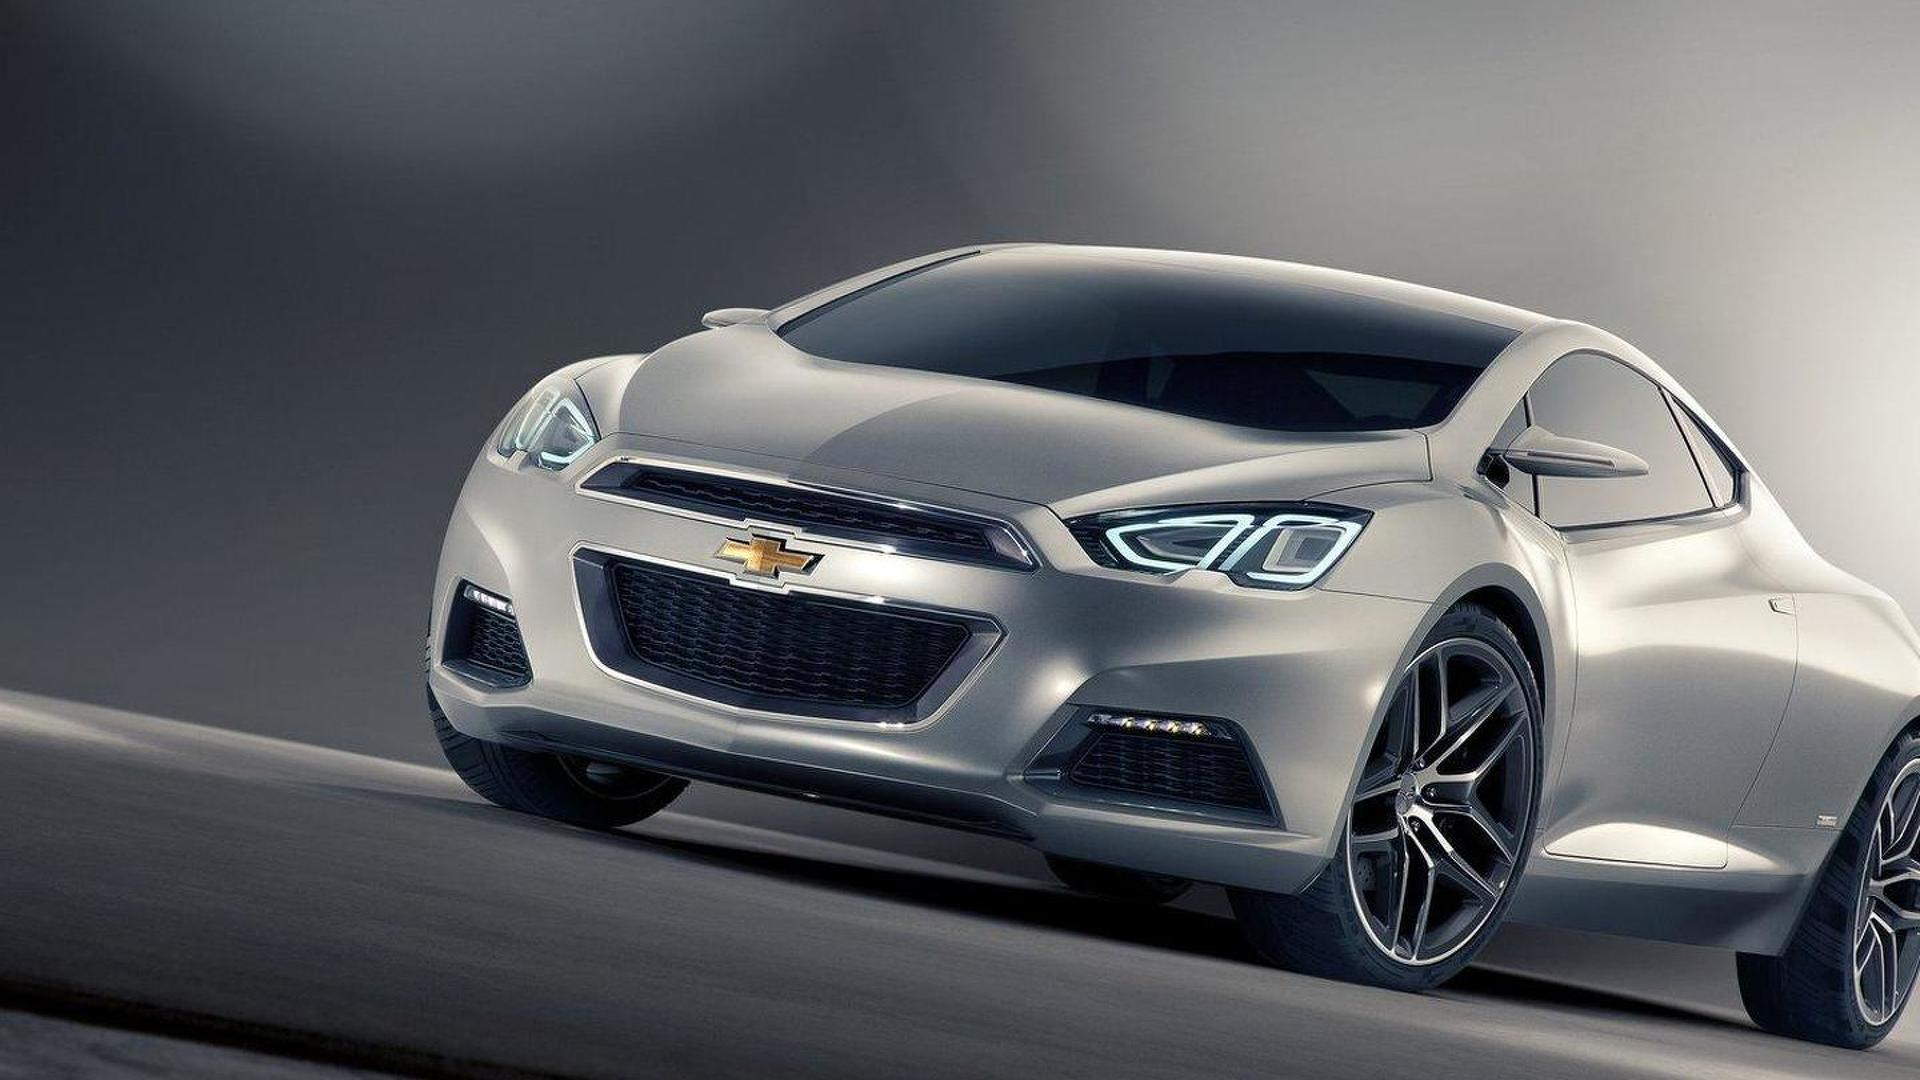 Chevrolet Code 130R and Tru 140S surprise concepts revealed in Detroit [videos]